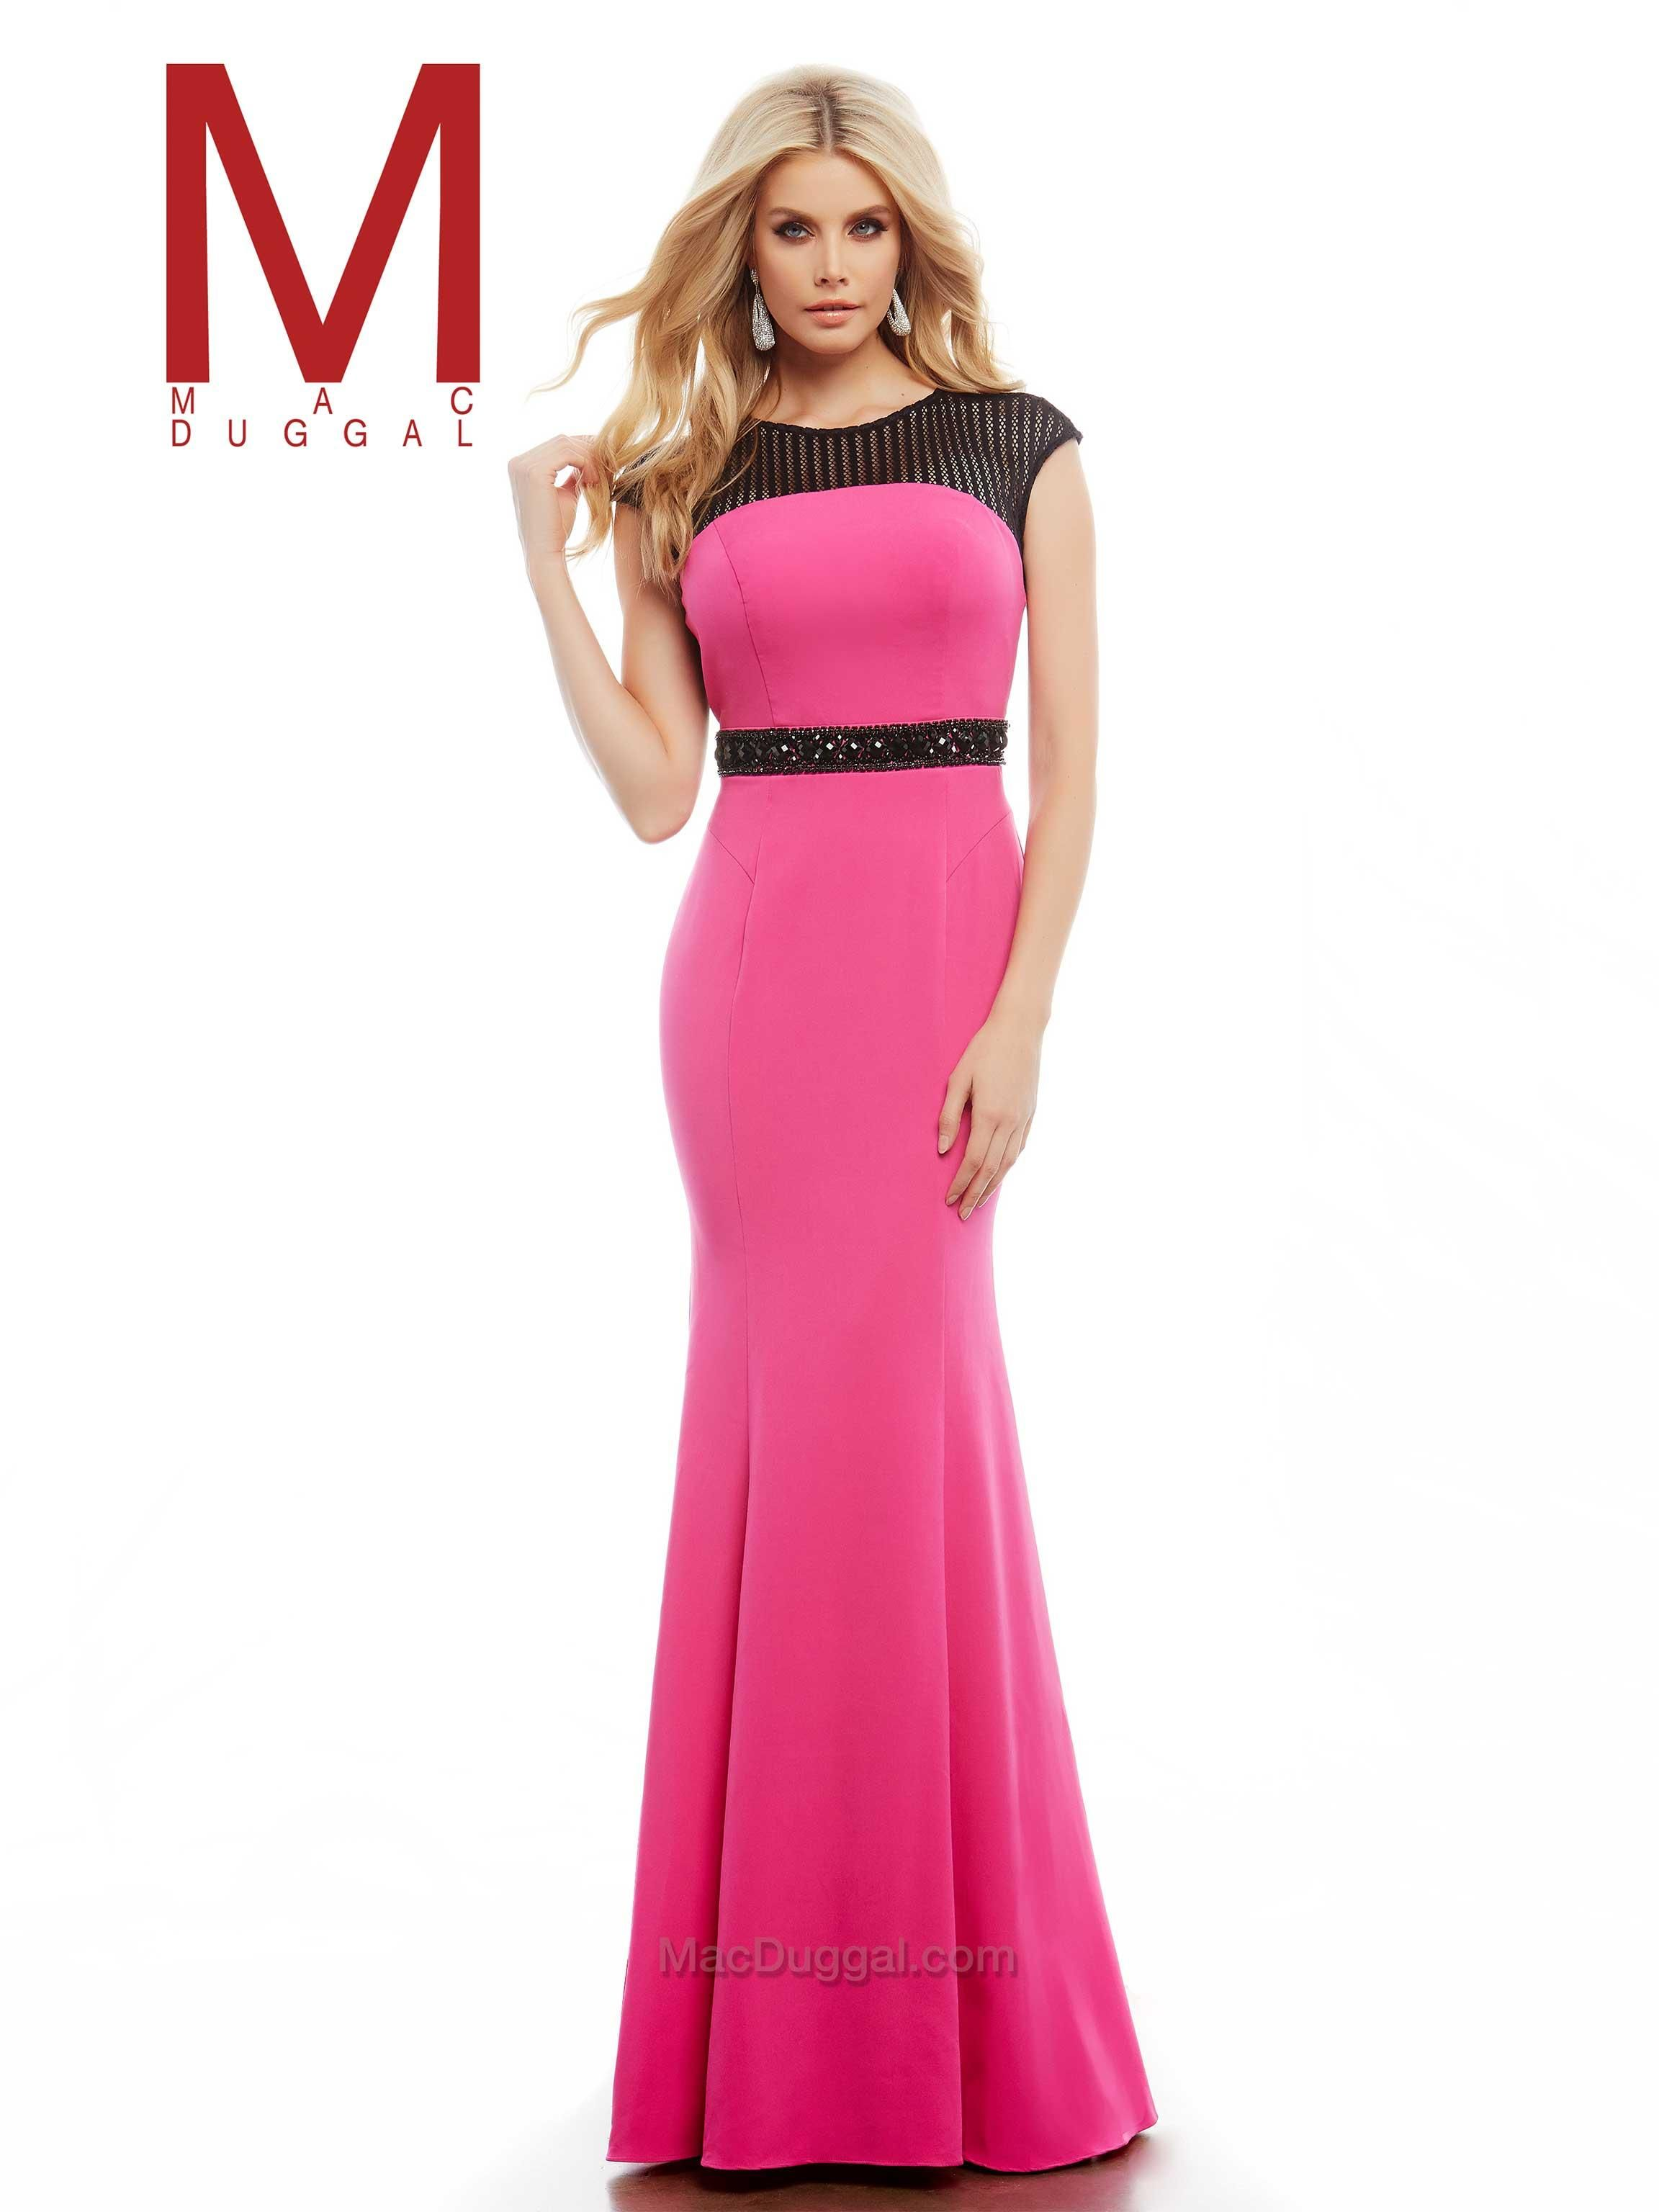 Style Search Results | Mac Duggal | Prom Dresses 2016 | Pinterest